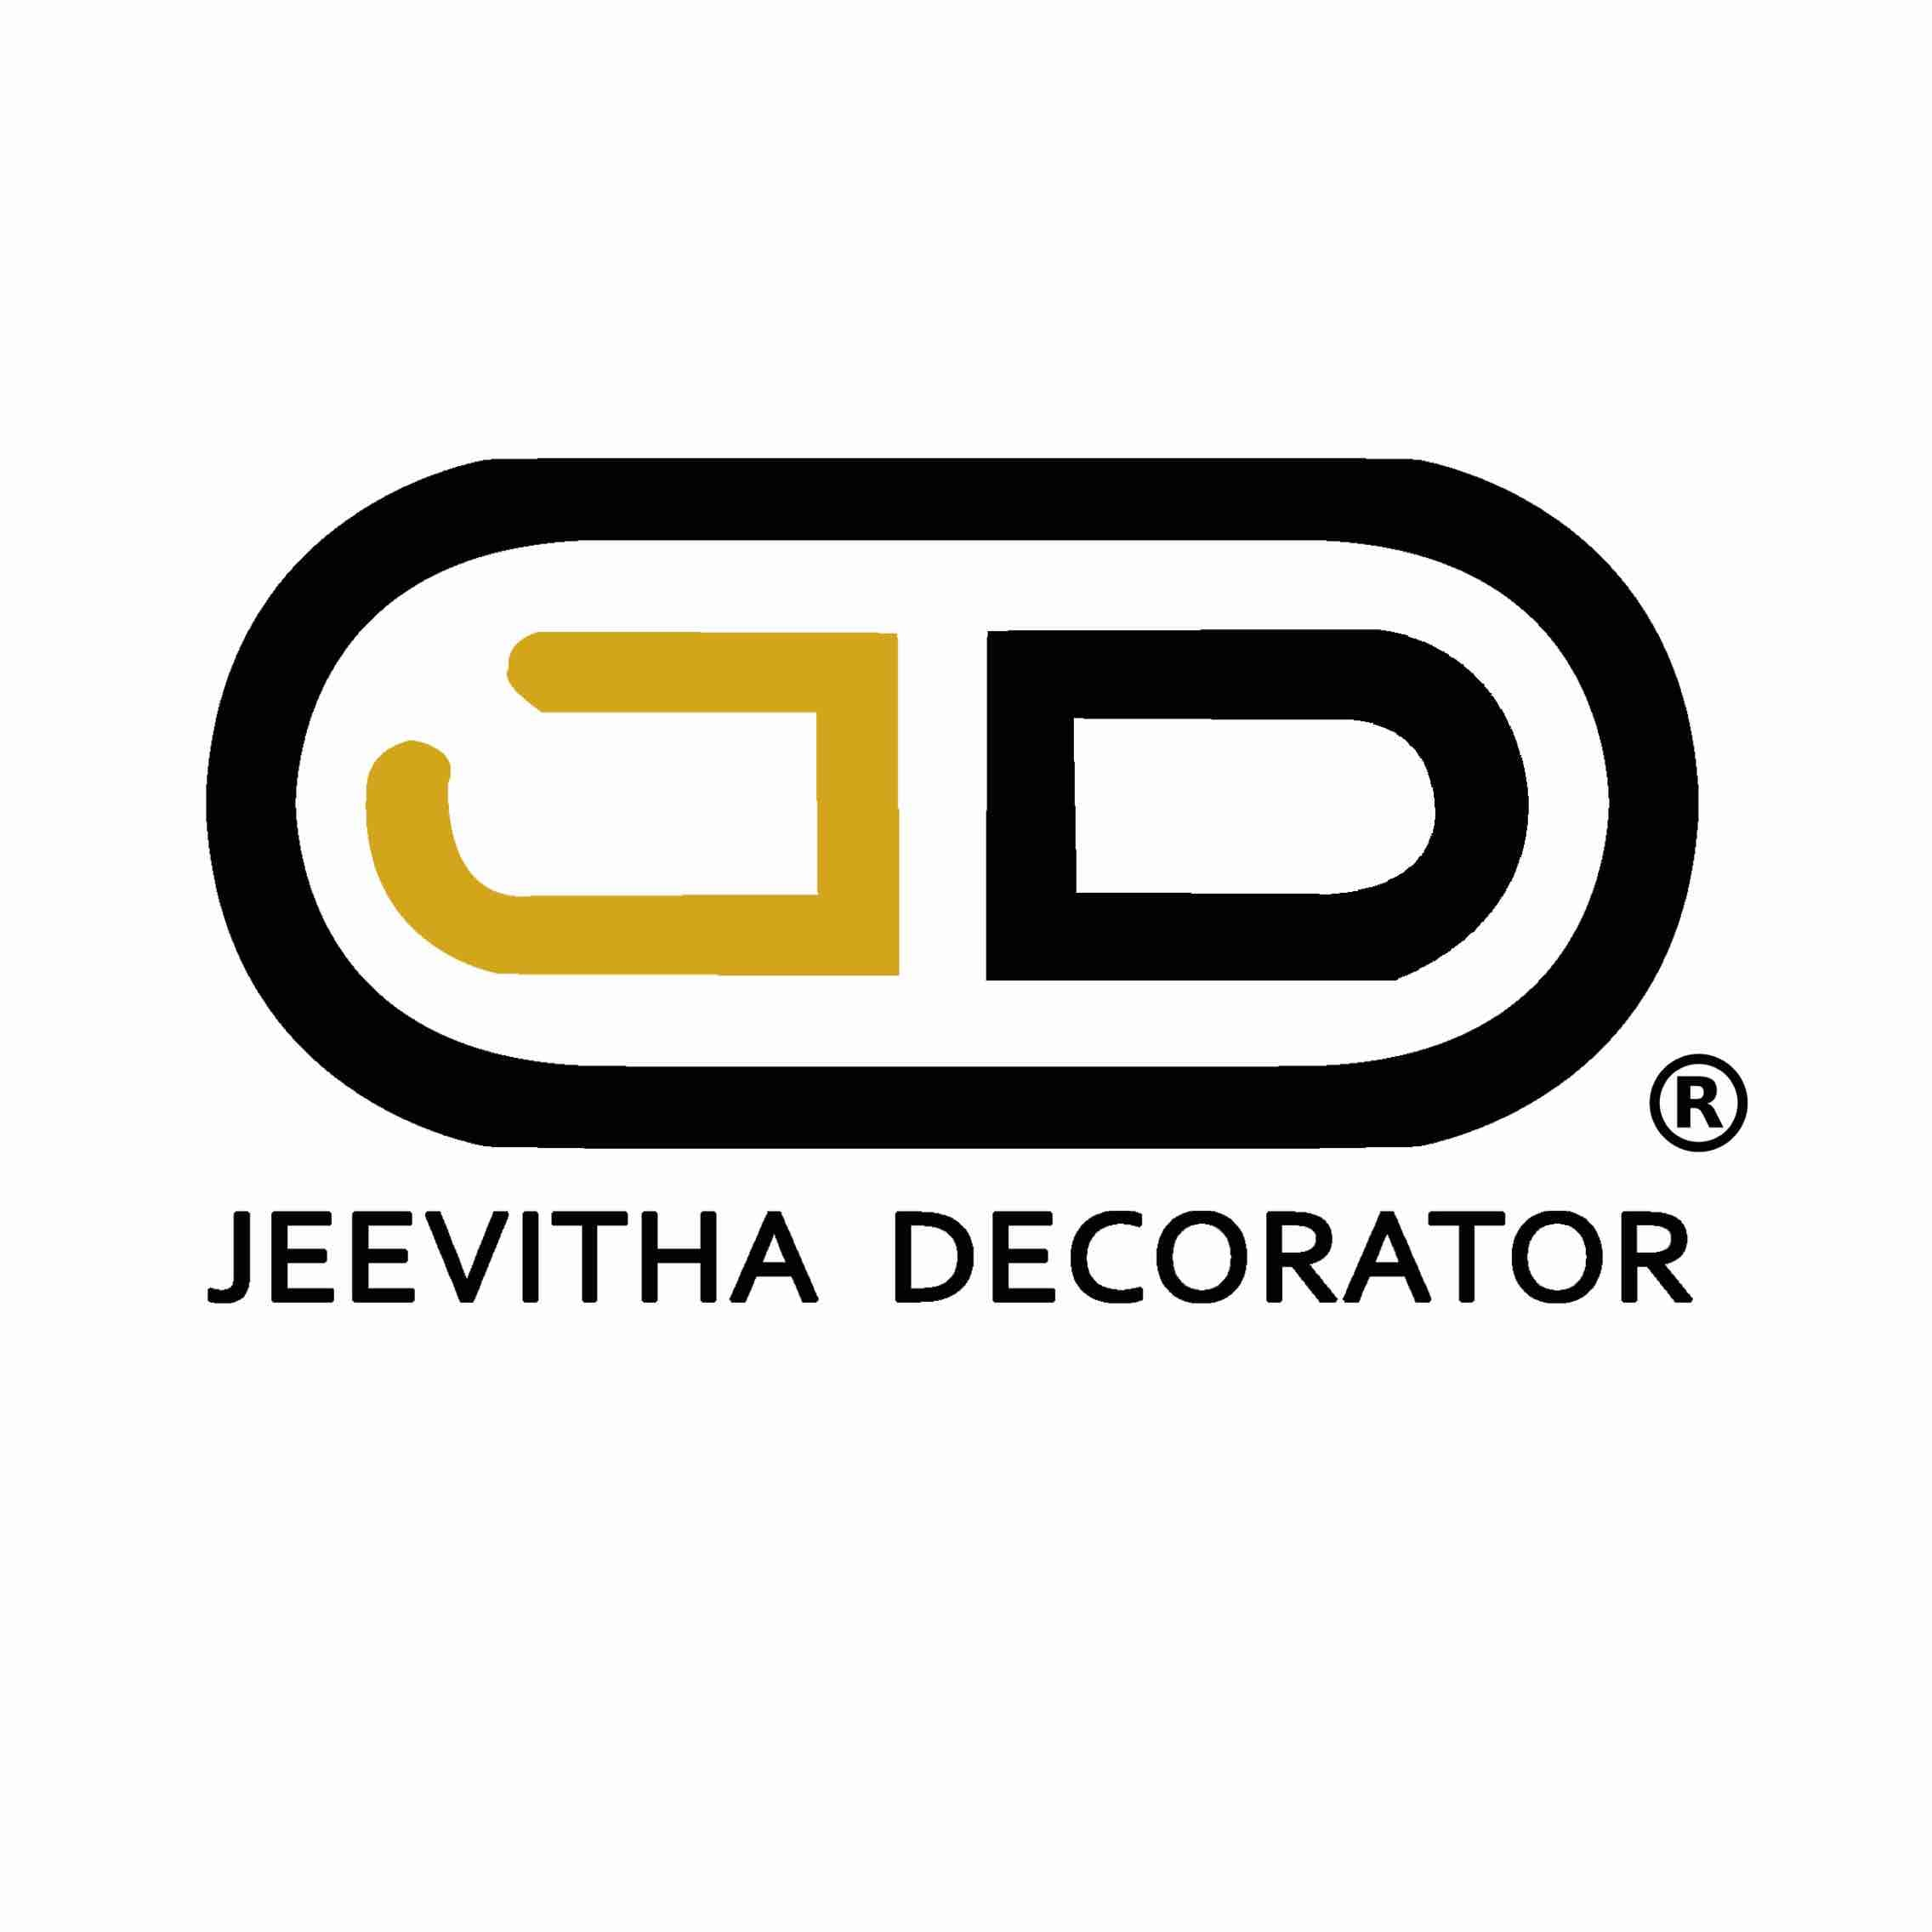 Jeevitha Decorator